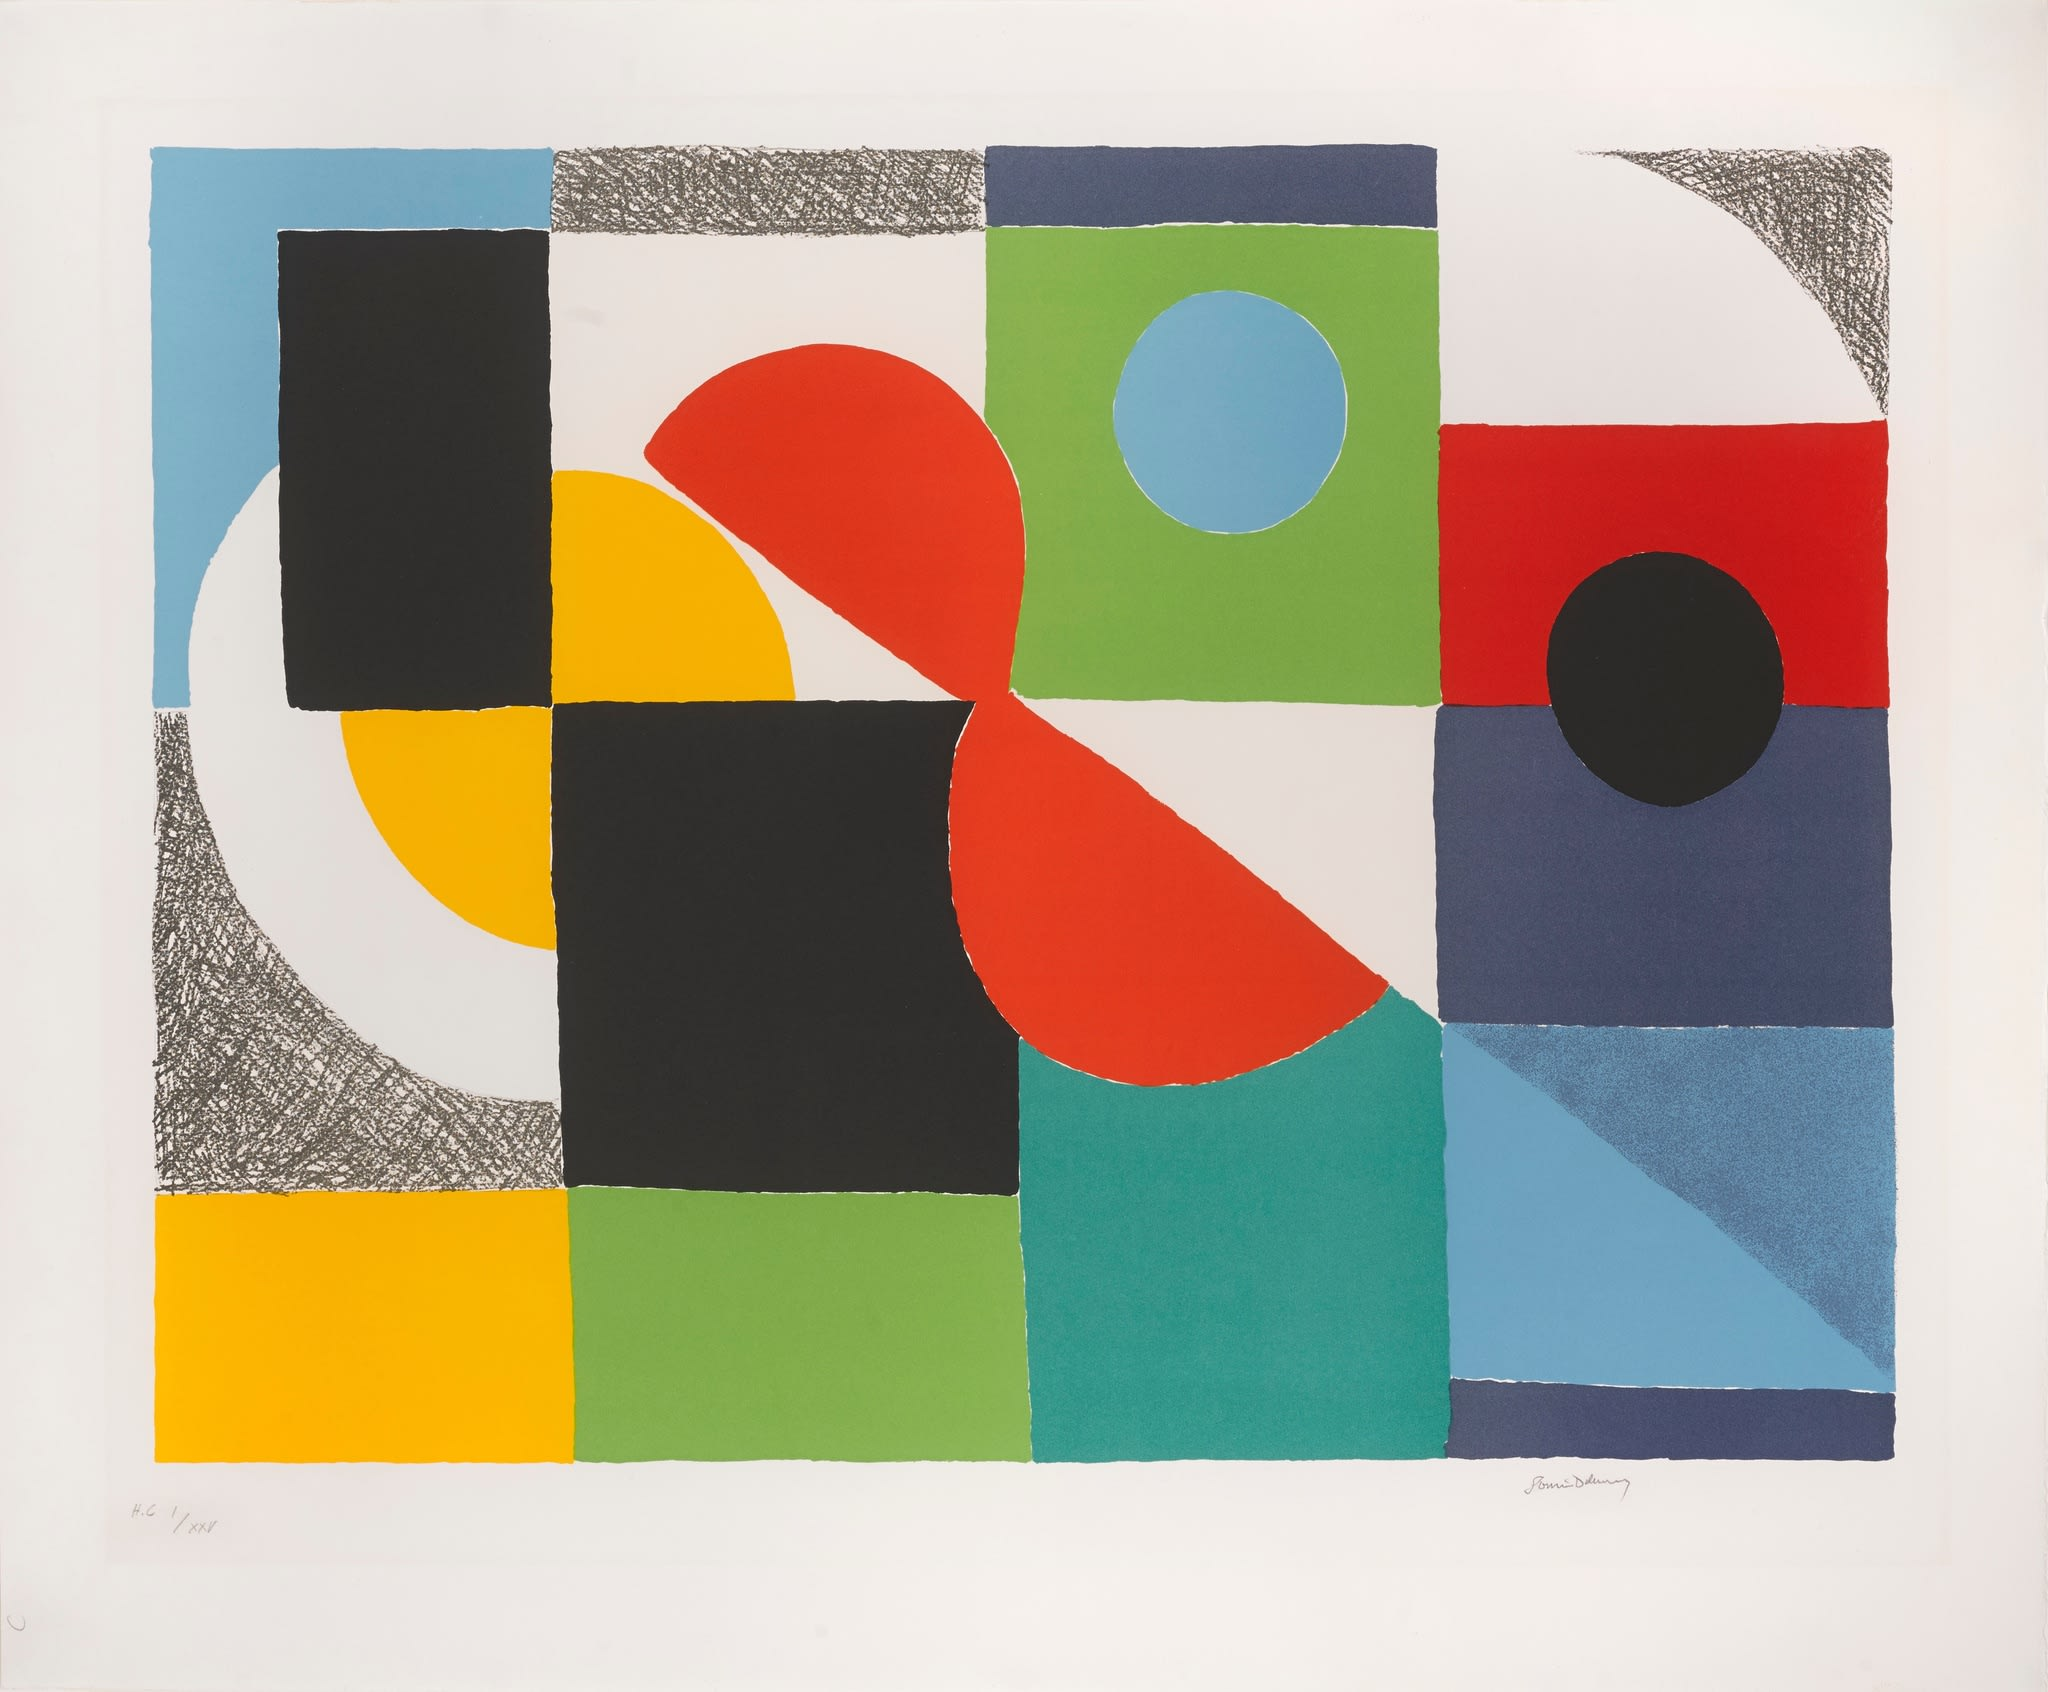 """<span class=""""link fancybox-details-link""""><a href=""""/artists/39-sonia-delaunay/works/145-sonia-delaunay-grand-helice-rouge-1970/"""">View Detail Page</a></span><div class=""""artist""""><strong>Sonia Delaunay</strong></div> 1885 - 1979 <div class=""""title""""><em>Grand Helice Rouge</em>, 1970</div> <div class=""""signed_and_dated"""">signed in pencil lower right,</div> <div class=""""medium"""">Lithograph</div> <div class=""""dimensions"""">29 3/4 x 35 3/4 in<br />75.6 x 90.8 cm</div> <div class=""""edition_details"""">H.C I/XXV, Edition size</div>"""